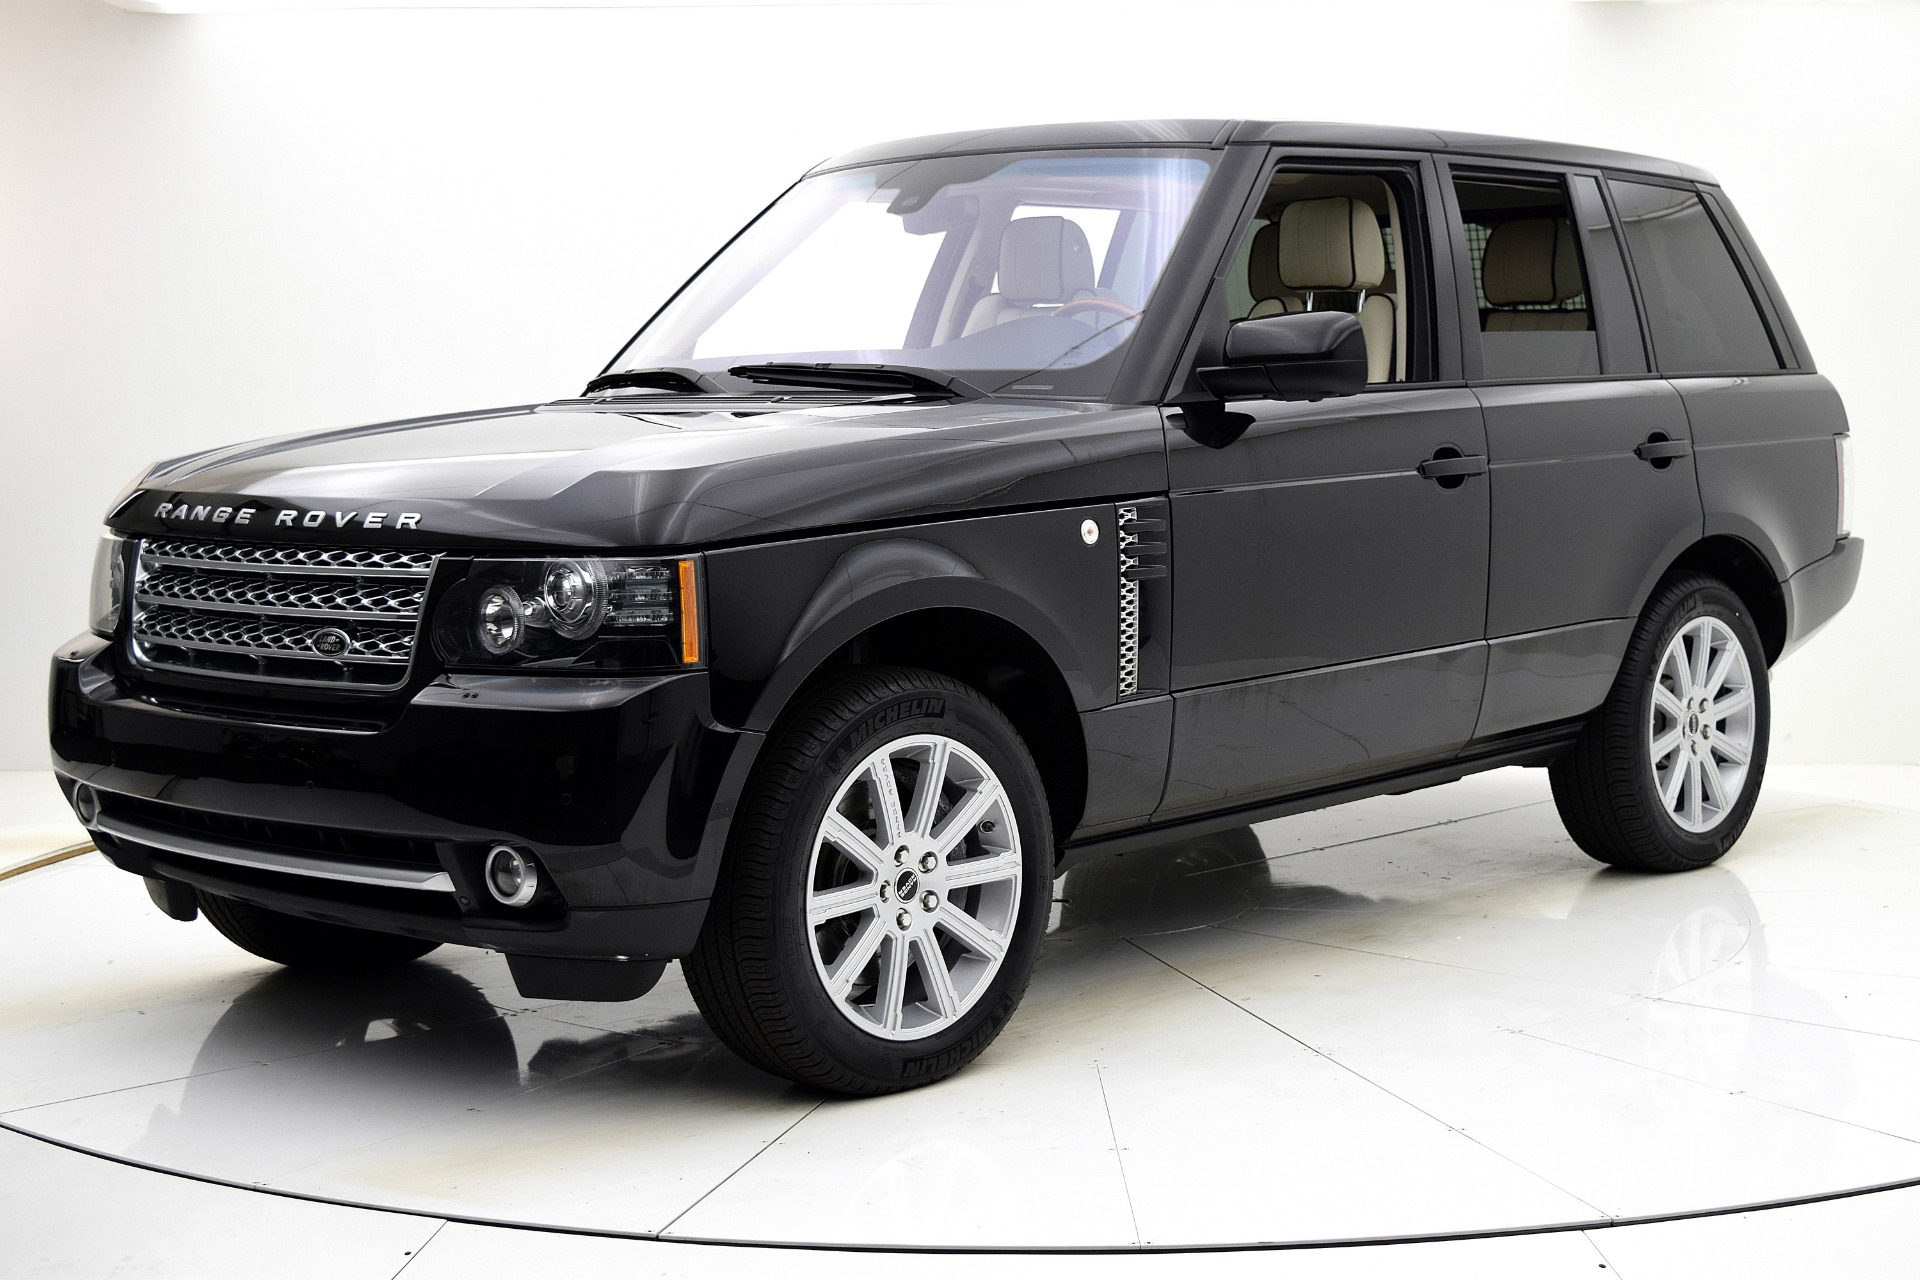 Used 2012 Land Rover Range Rover SC for sale Sold at Bentley Palmyra N.J. in Palmyra NJ 08065 2